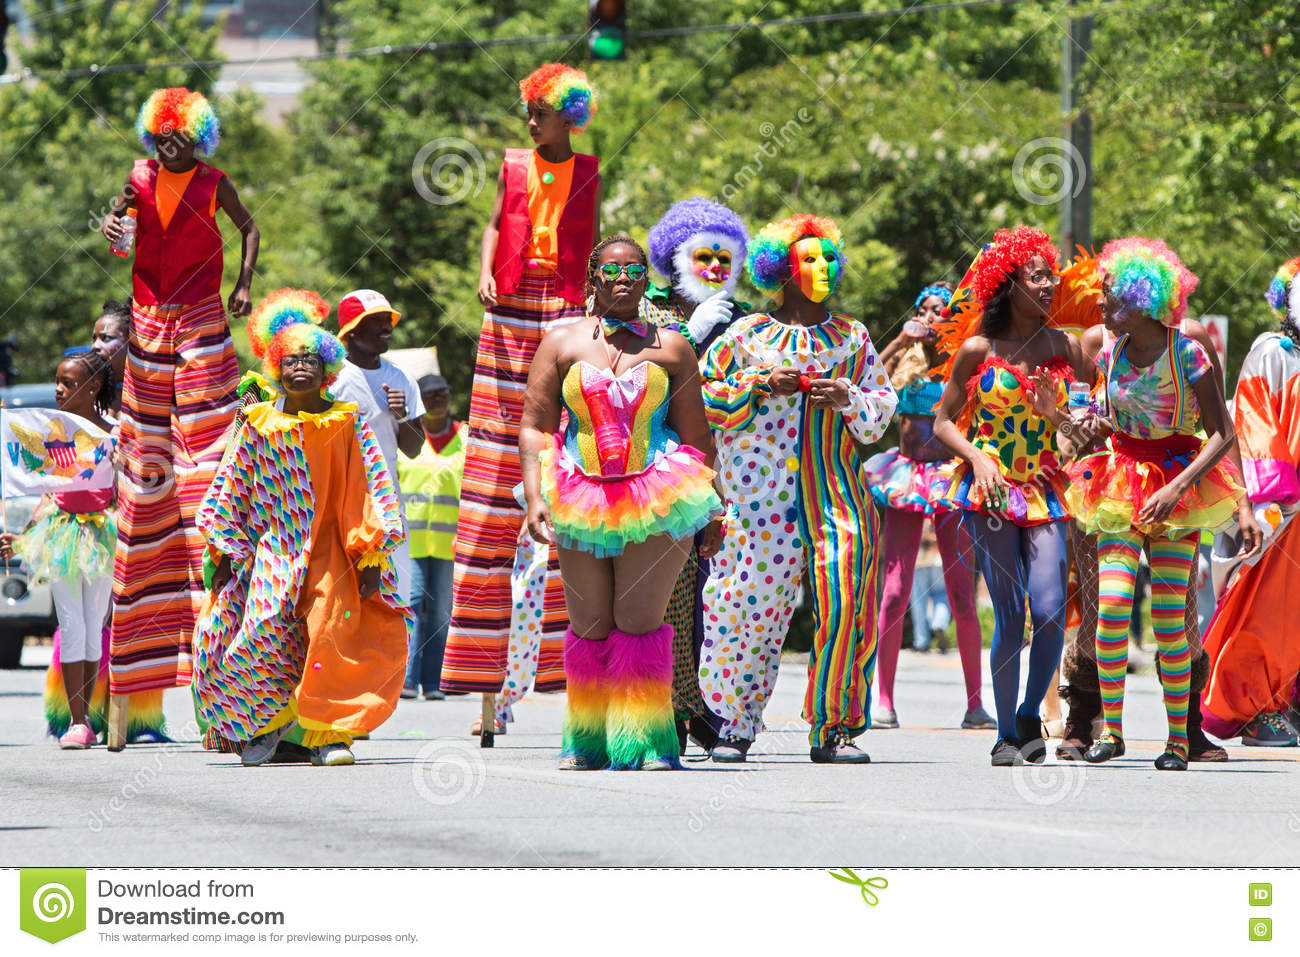 Caribbean People: People Wearing Clown Costumes Walk In Caribbean Culture